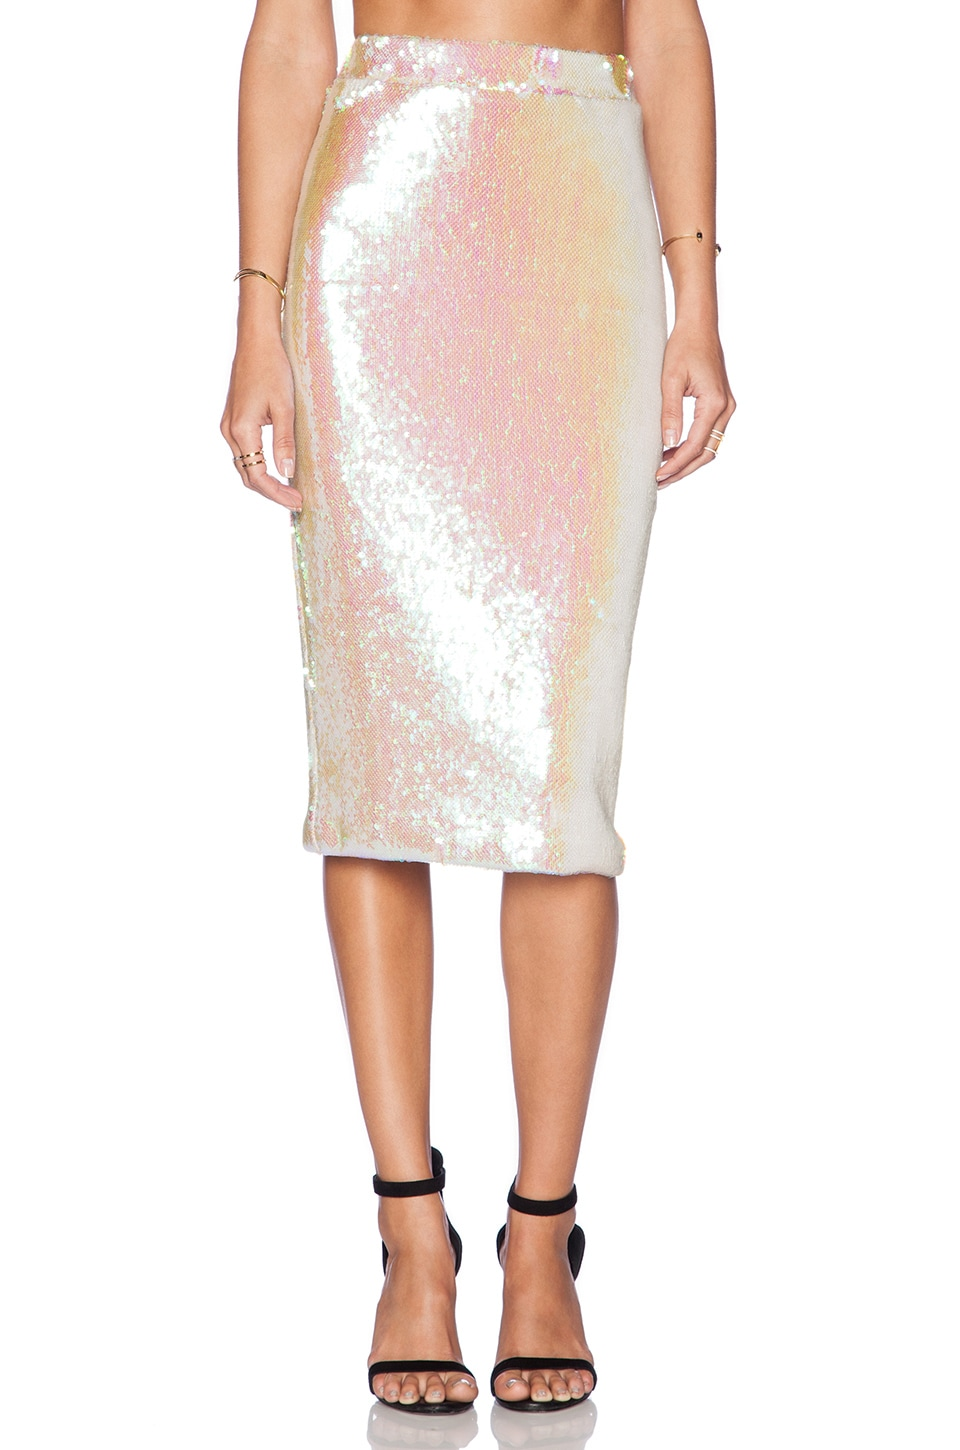 Essentiel Antwerp Atlantis Rising Skirt in Pink Sequin